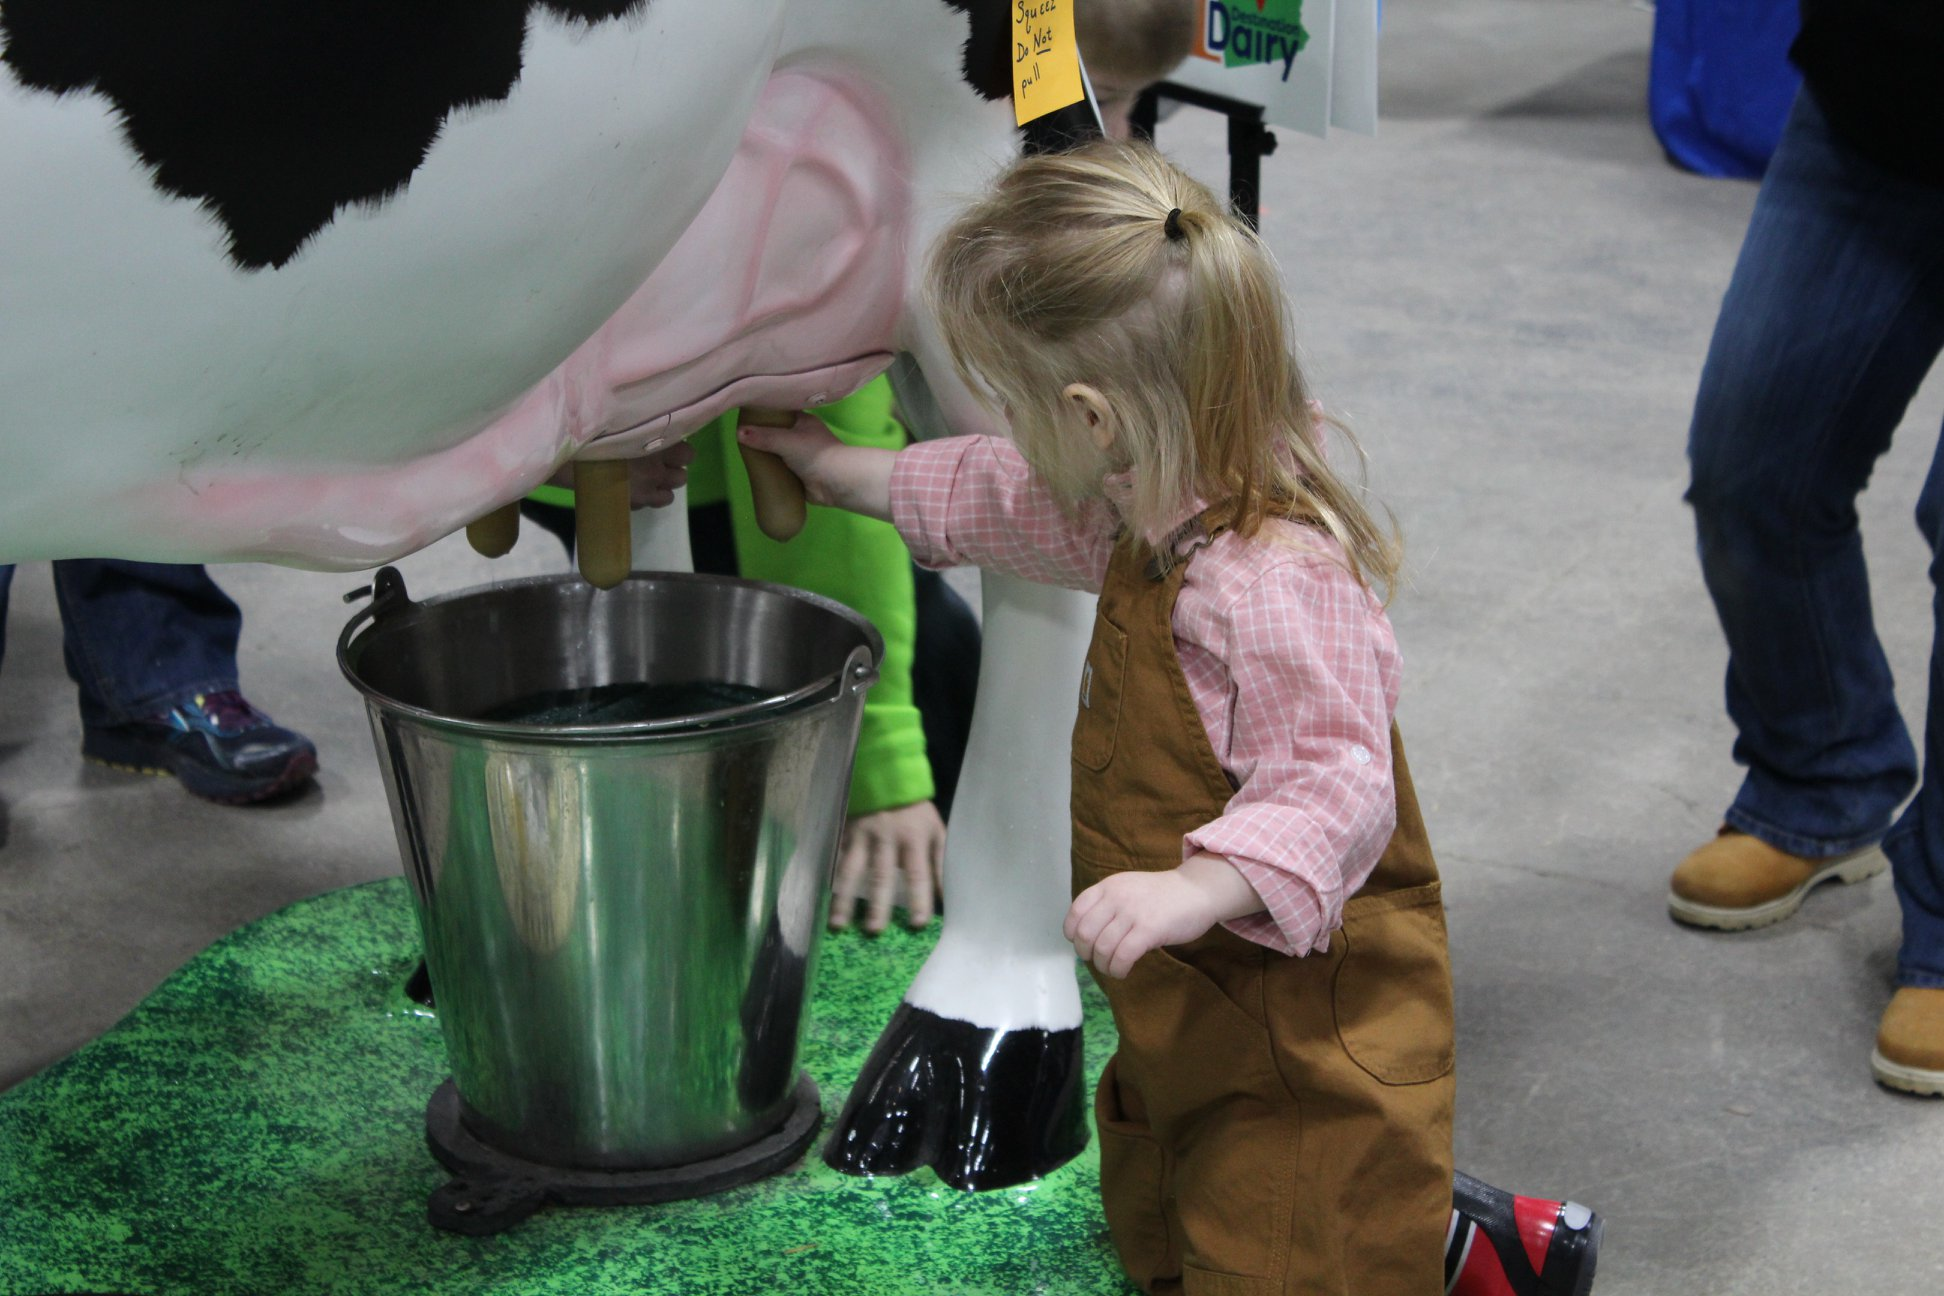 A young girl milking a fake cow at the 2020 Pennsylvania Farm Show.